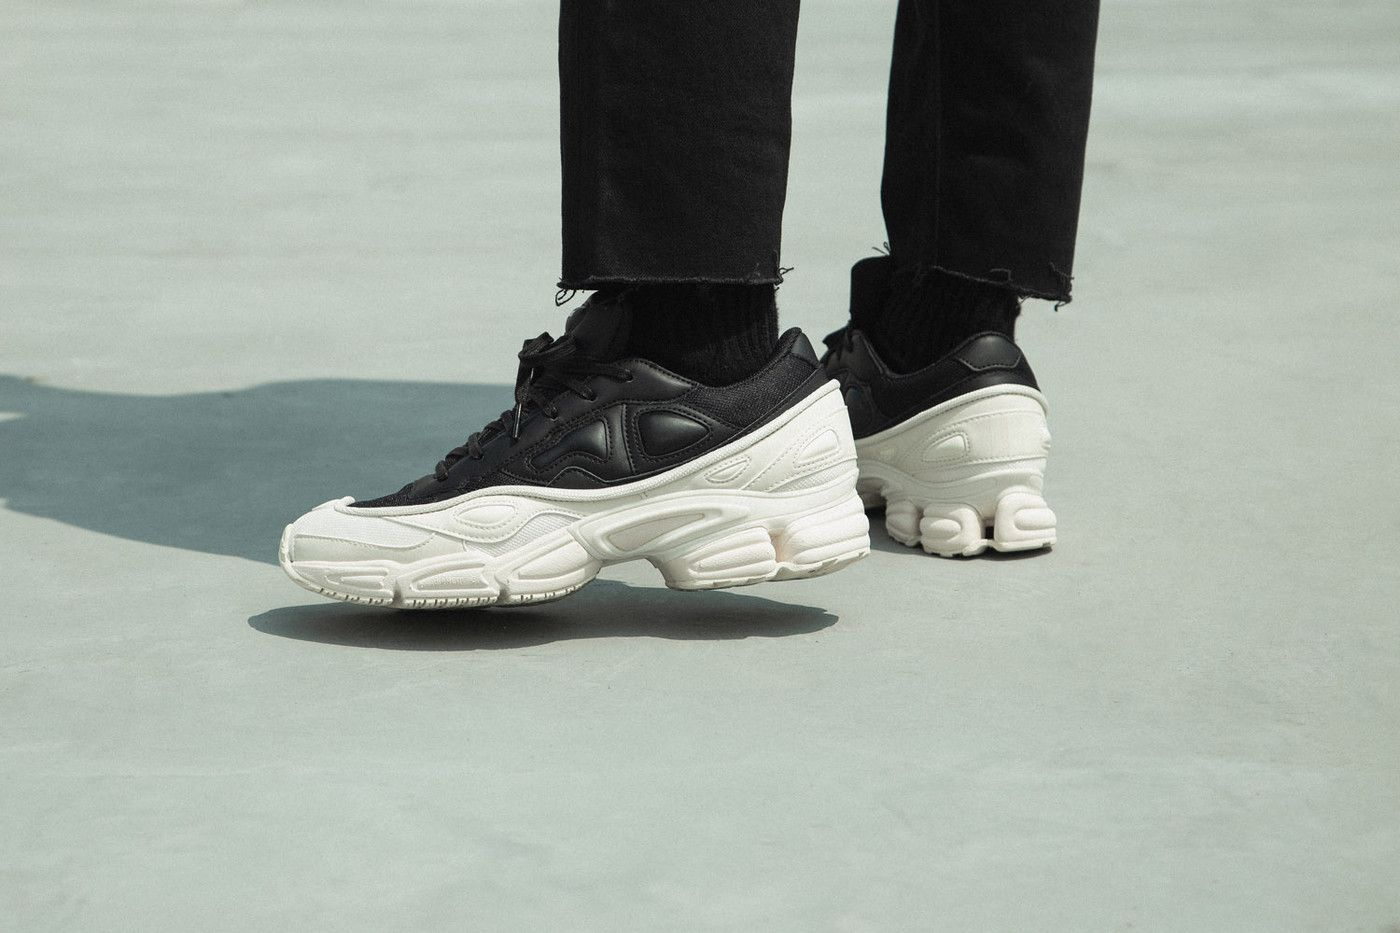 f432be02 A Closer Look at the adidas by Raf Simons Ozweego Pack | Men's ...